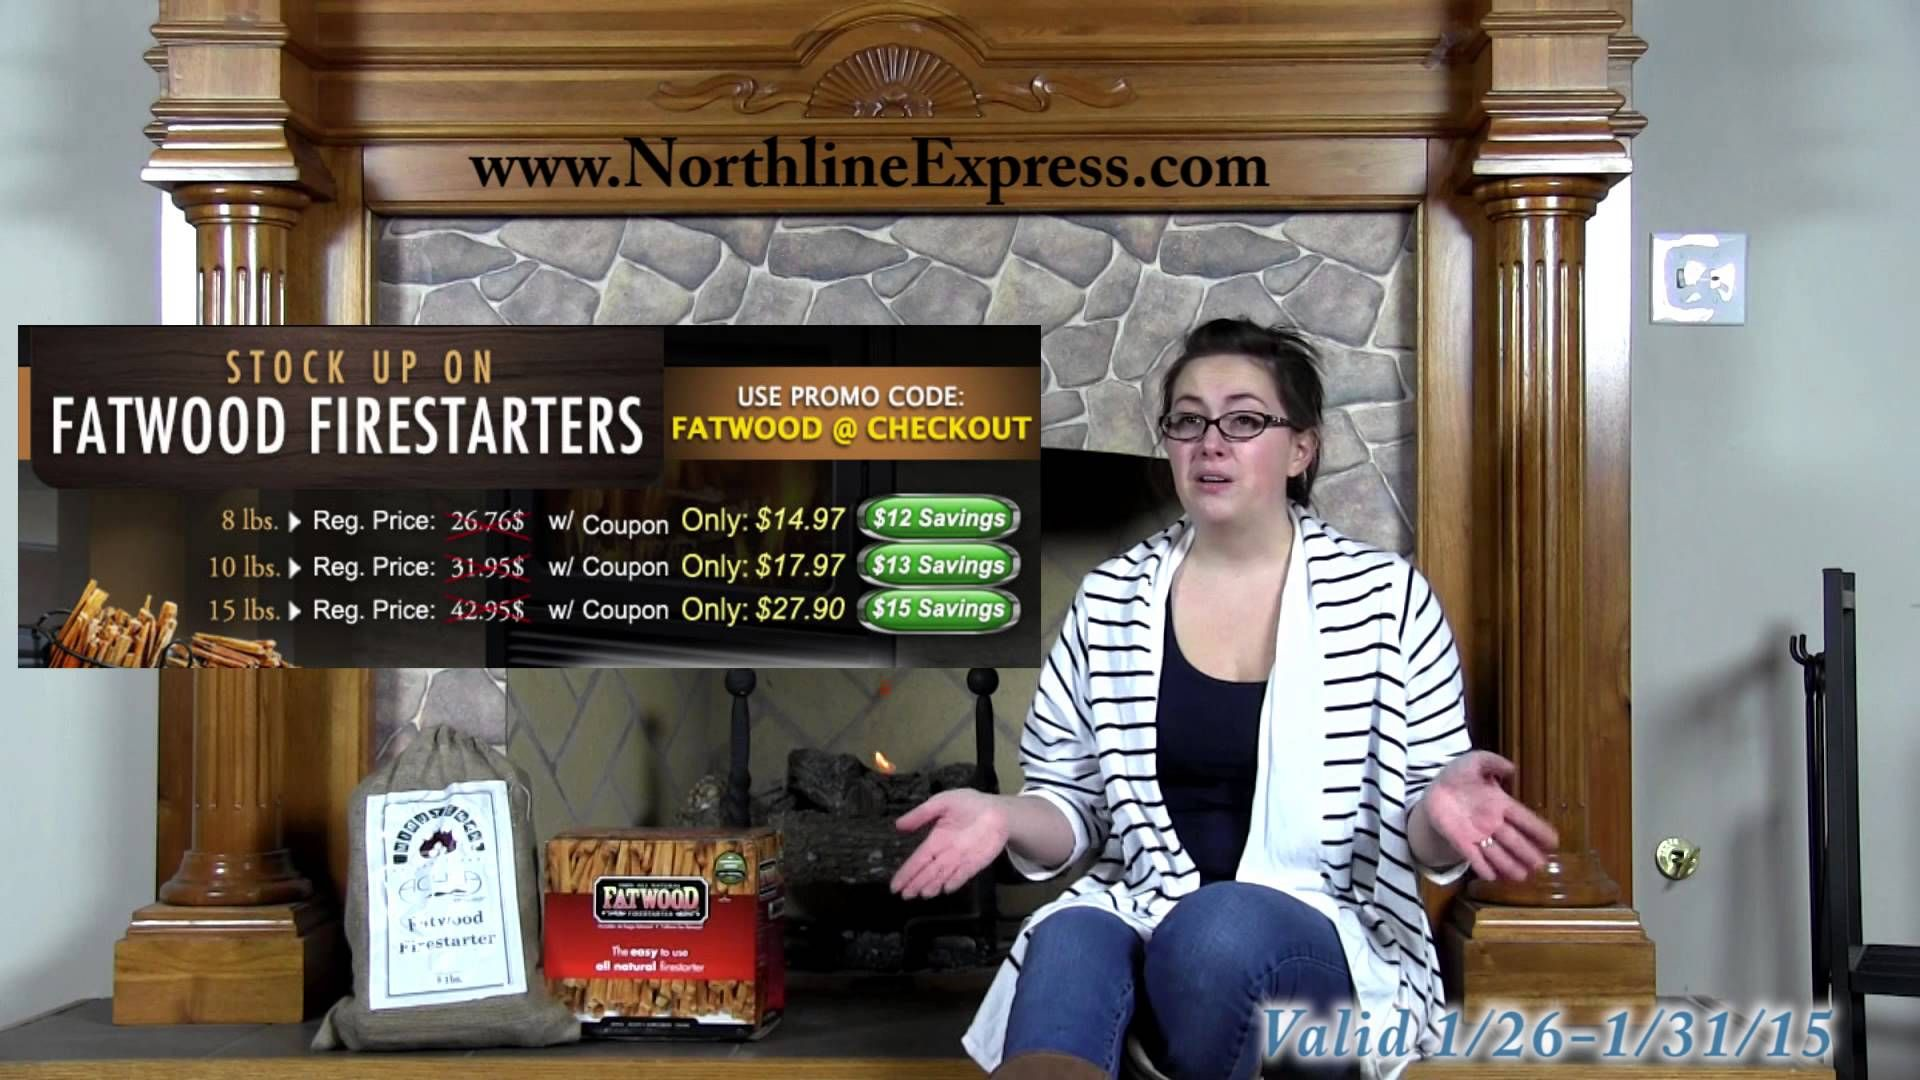 Use Coupon Code FATWOOD to save on fatwood fire starters now thru 1/31/2015  http://www.northlineexpress.com/fatwood-holders.html